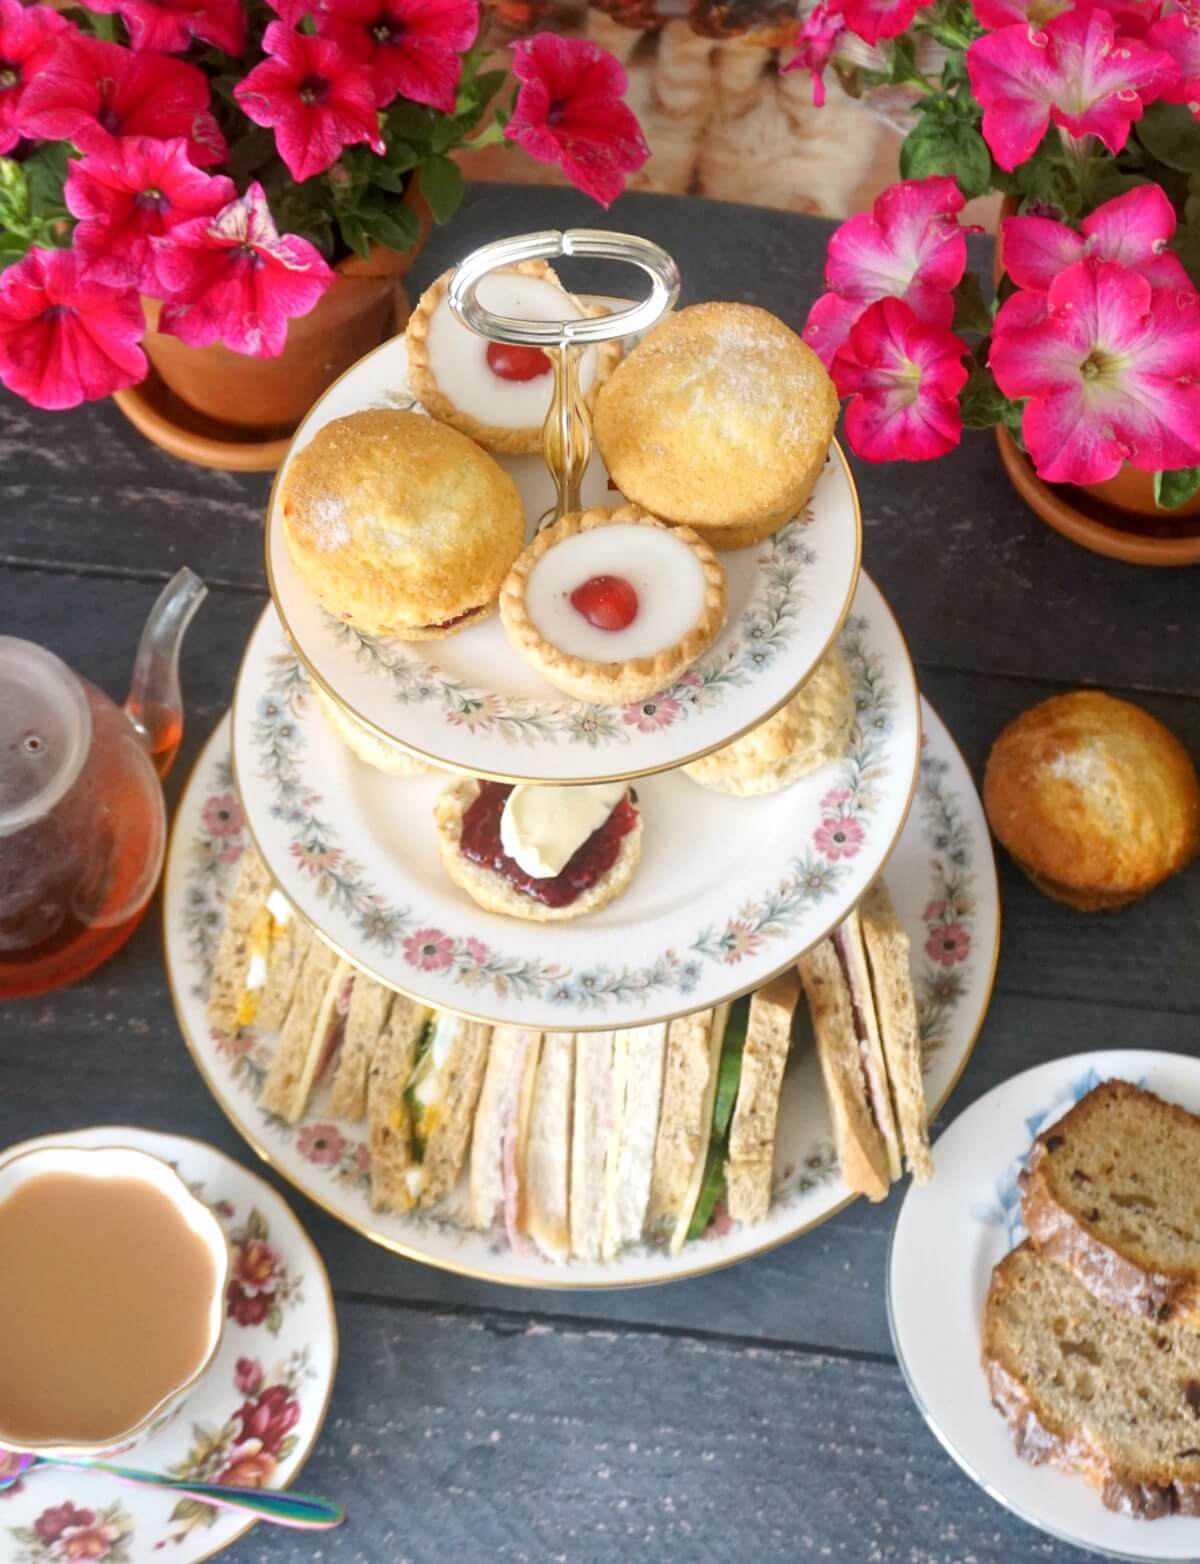 A cake stand with afternoon tea treats